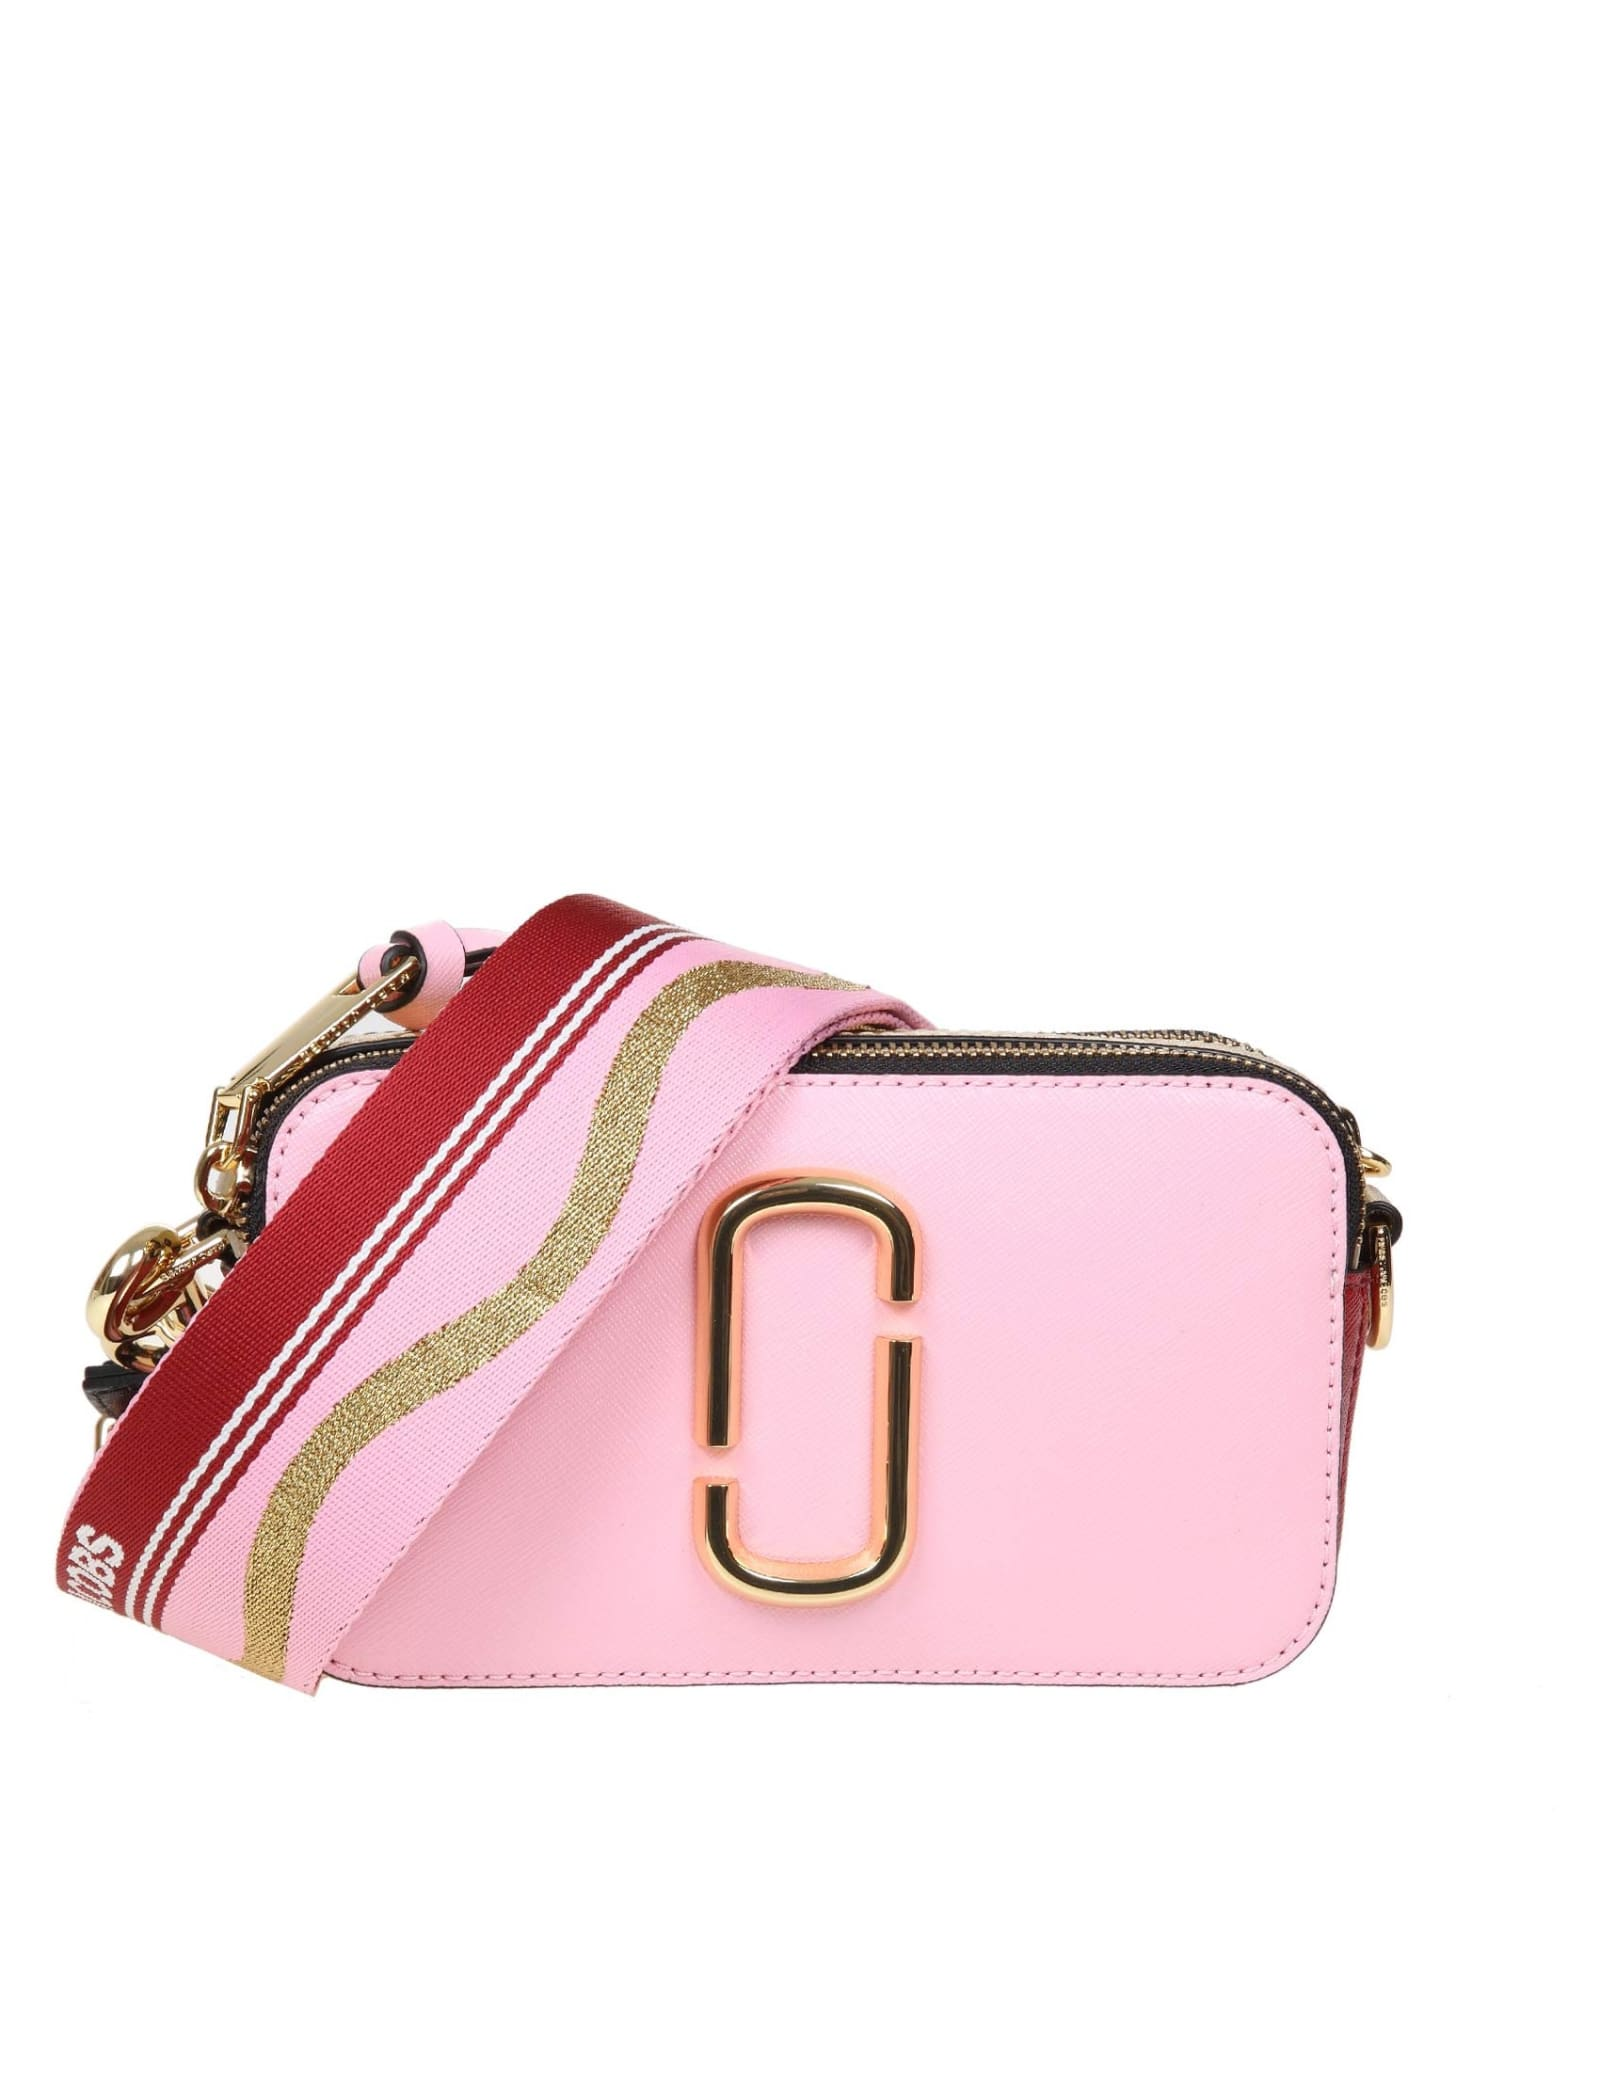 Marc Jacobs THE SNAPSHOT SUGAR CROSSBODY BAG IN SAFFIANO LEATHER